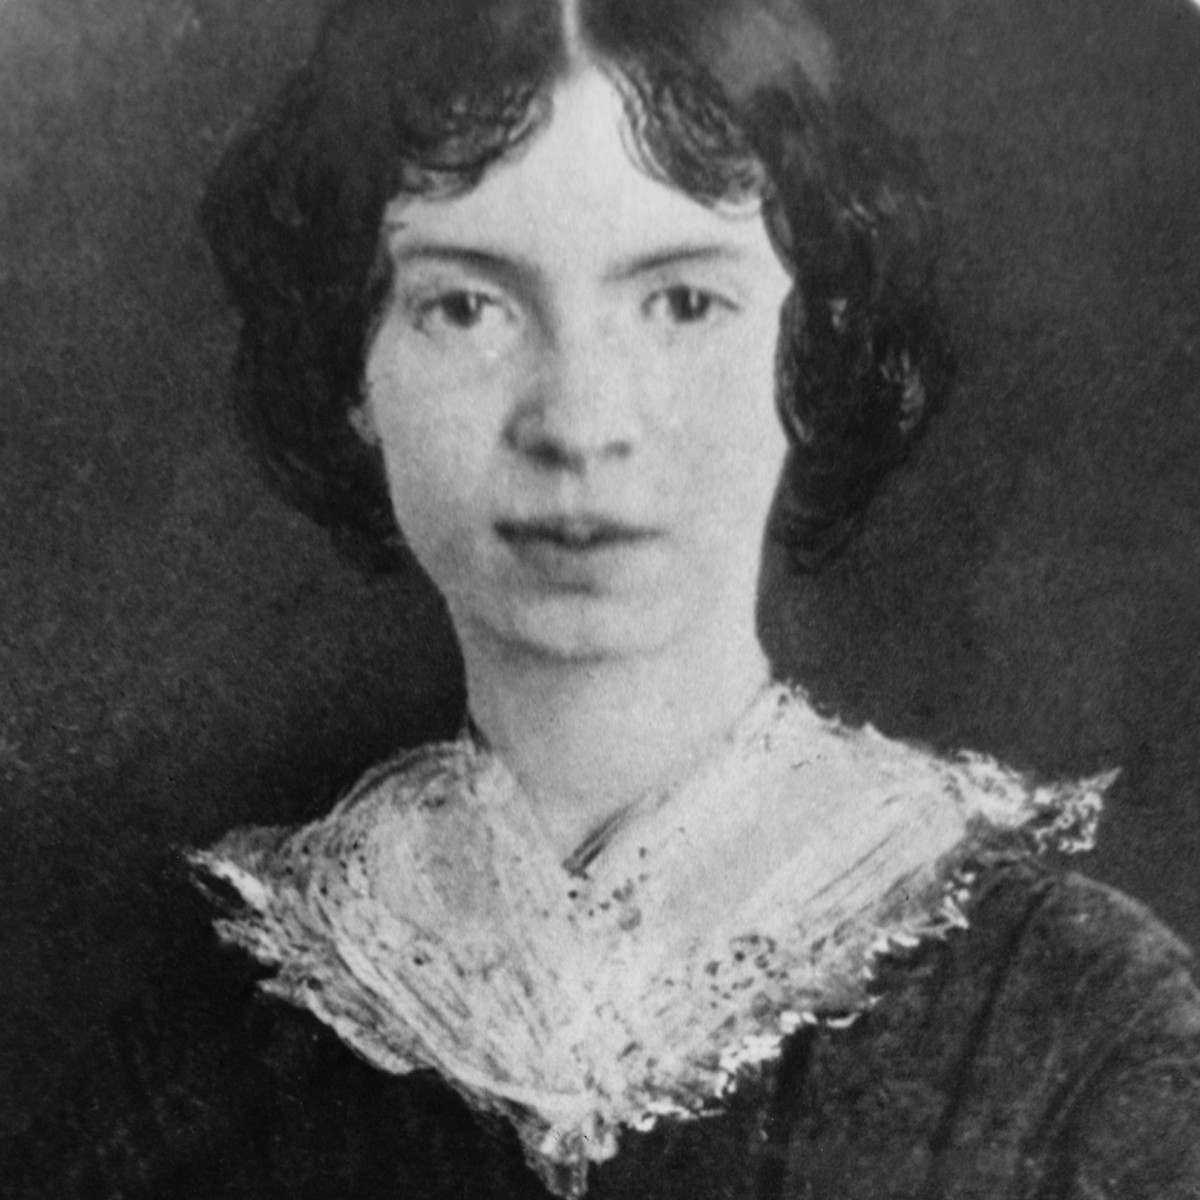 emily dickinson opted to adapt the new transcendental outlook in life Find free dickinson essays, term secluded life, emily dickinson\'s many encounters with views in life and adopted the new transcendental outlook.